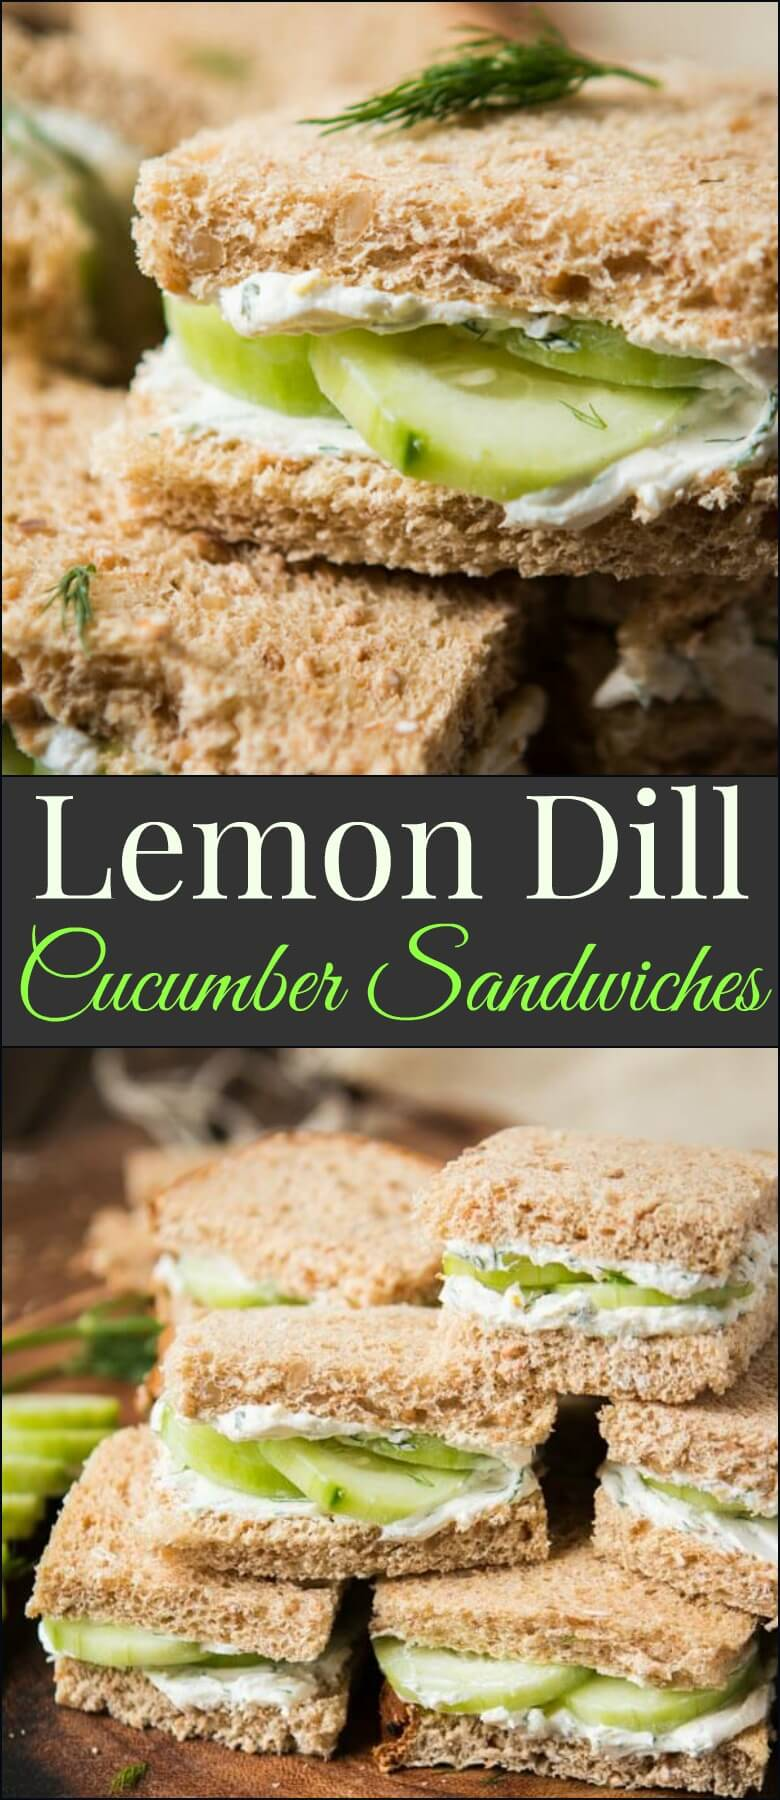 The best lemon dill cucumber sandwiches I've ever had added a touch of Greek yogurt to the spread. Try this awesome tea sandwich recipe at your next party with eureka!® Organic Bread!